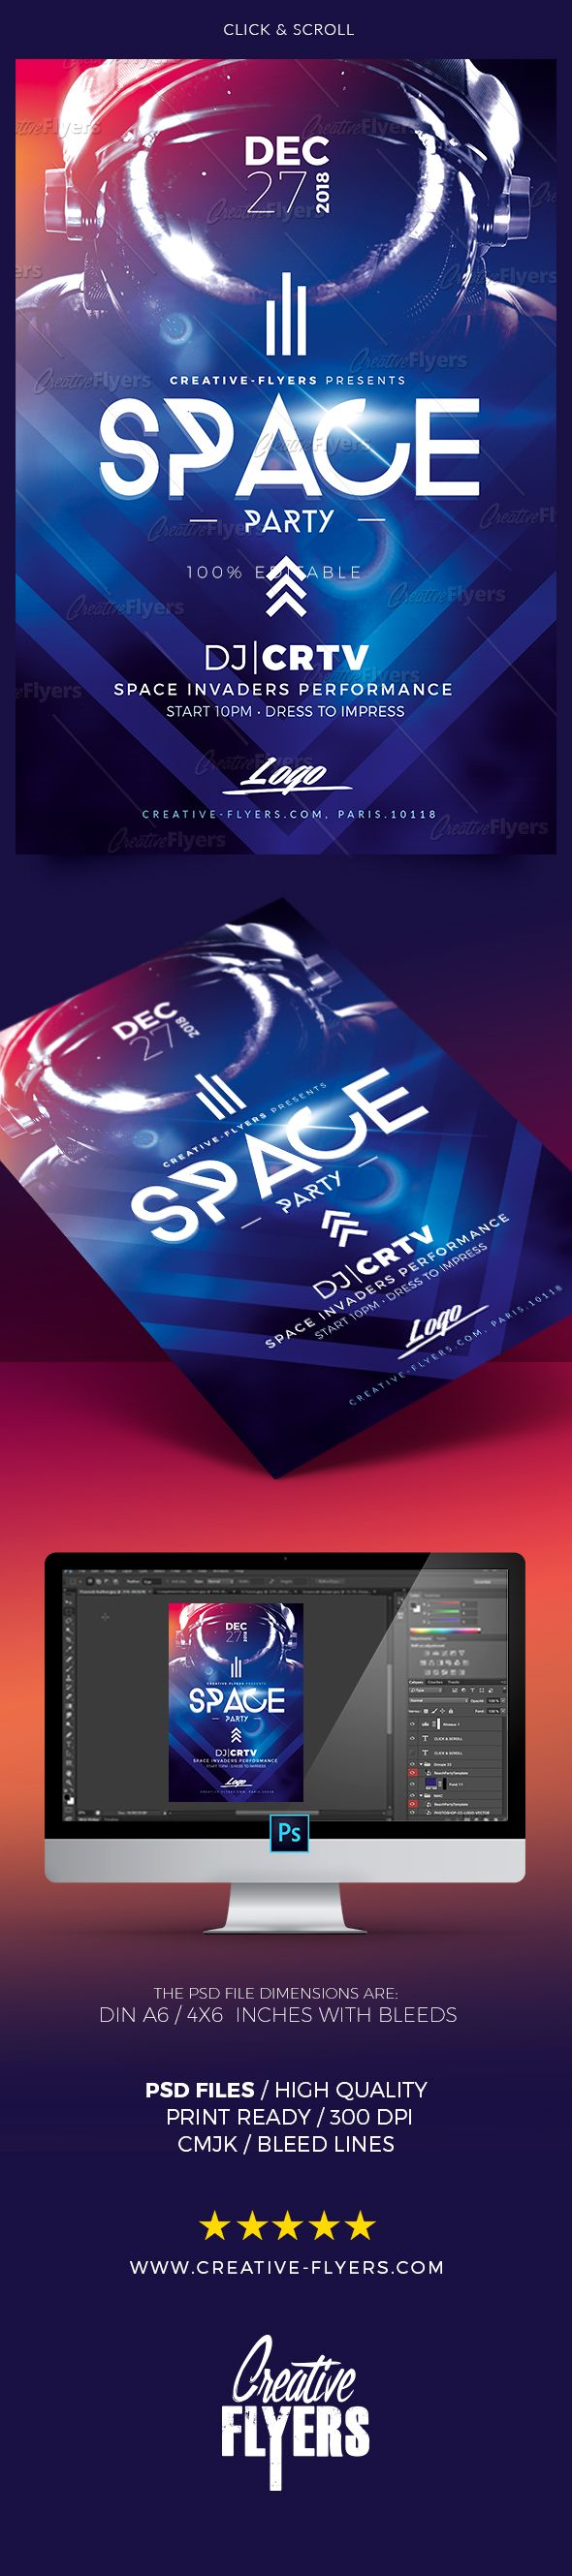 Creative Space Flyer -  premium Photoshop PSD flyer / poster template designed by Creative Flyers - Perfect to promote your Space Party ! #space #flyer #electro #template #creativeflyers